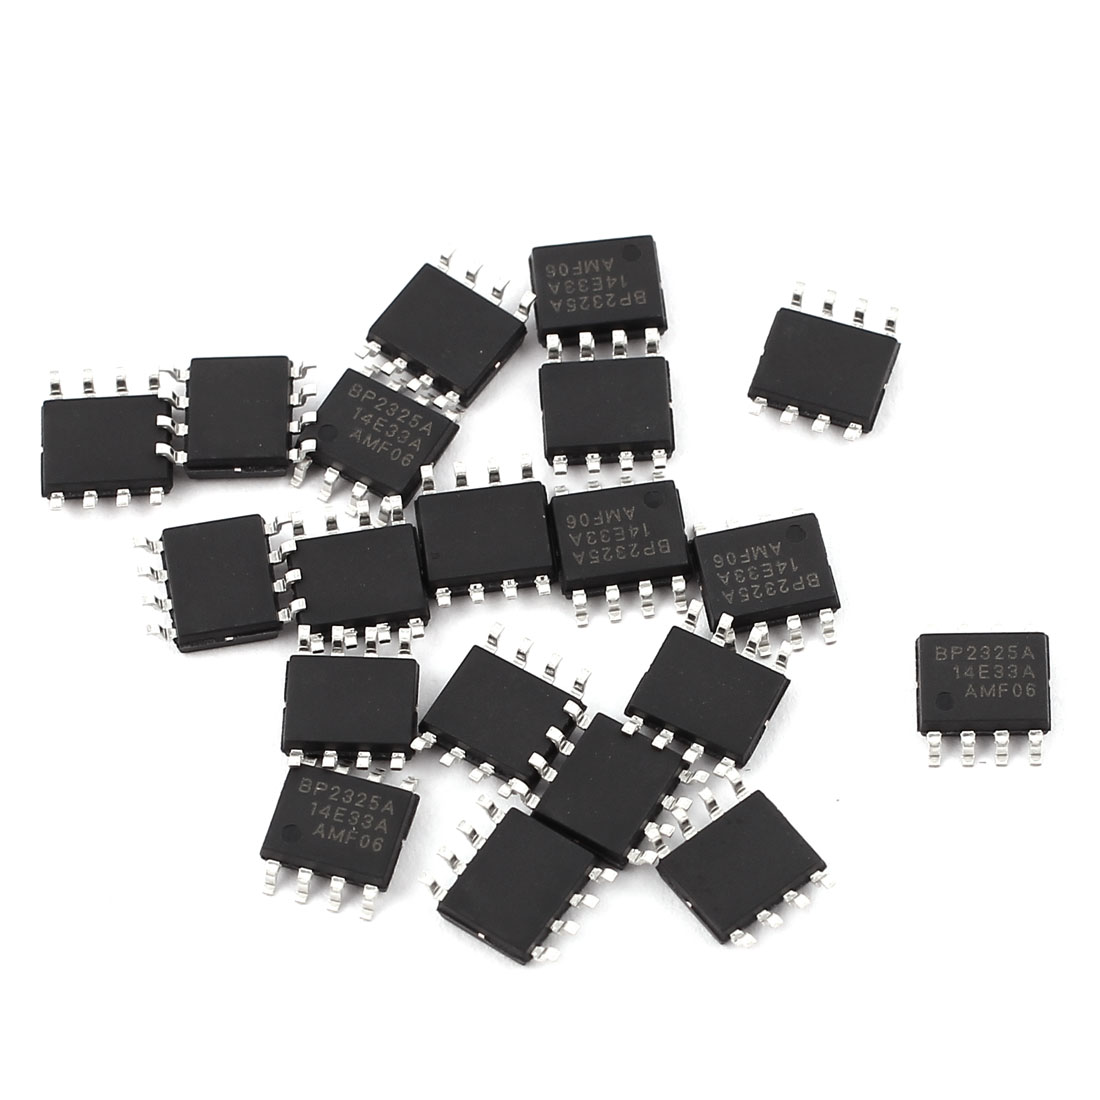 20Pcs BP2325A SOP-8 SMD SMT Type PCB Surface Mount LED Driver Circuit Module Integrated Circuit IC Chip